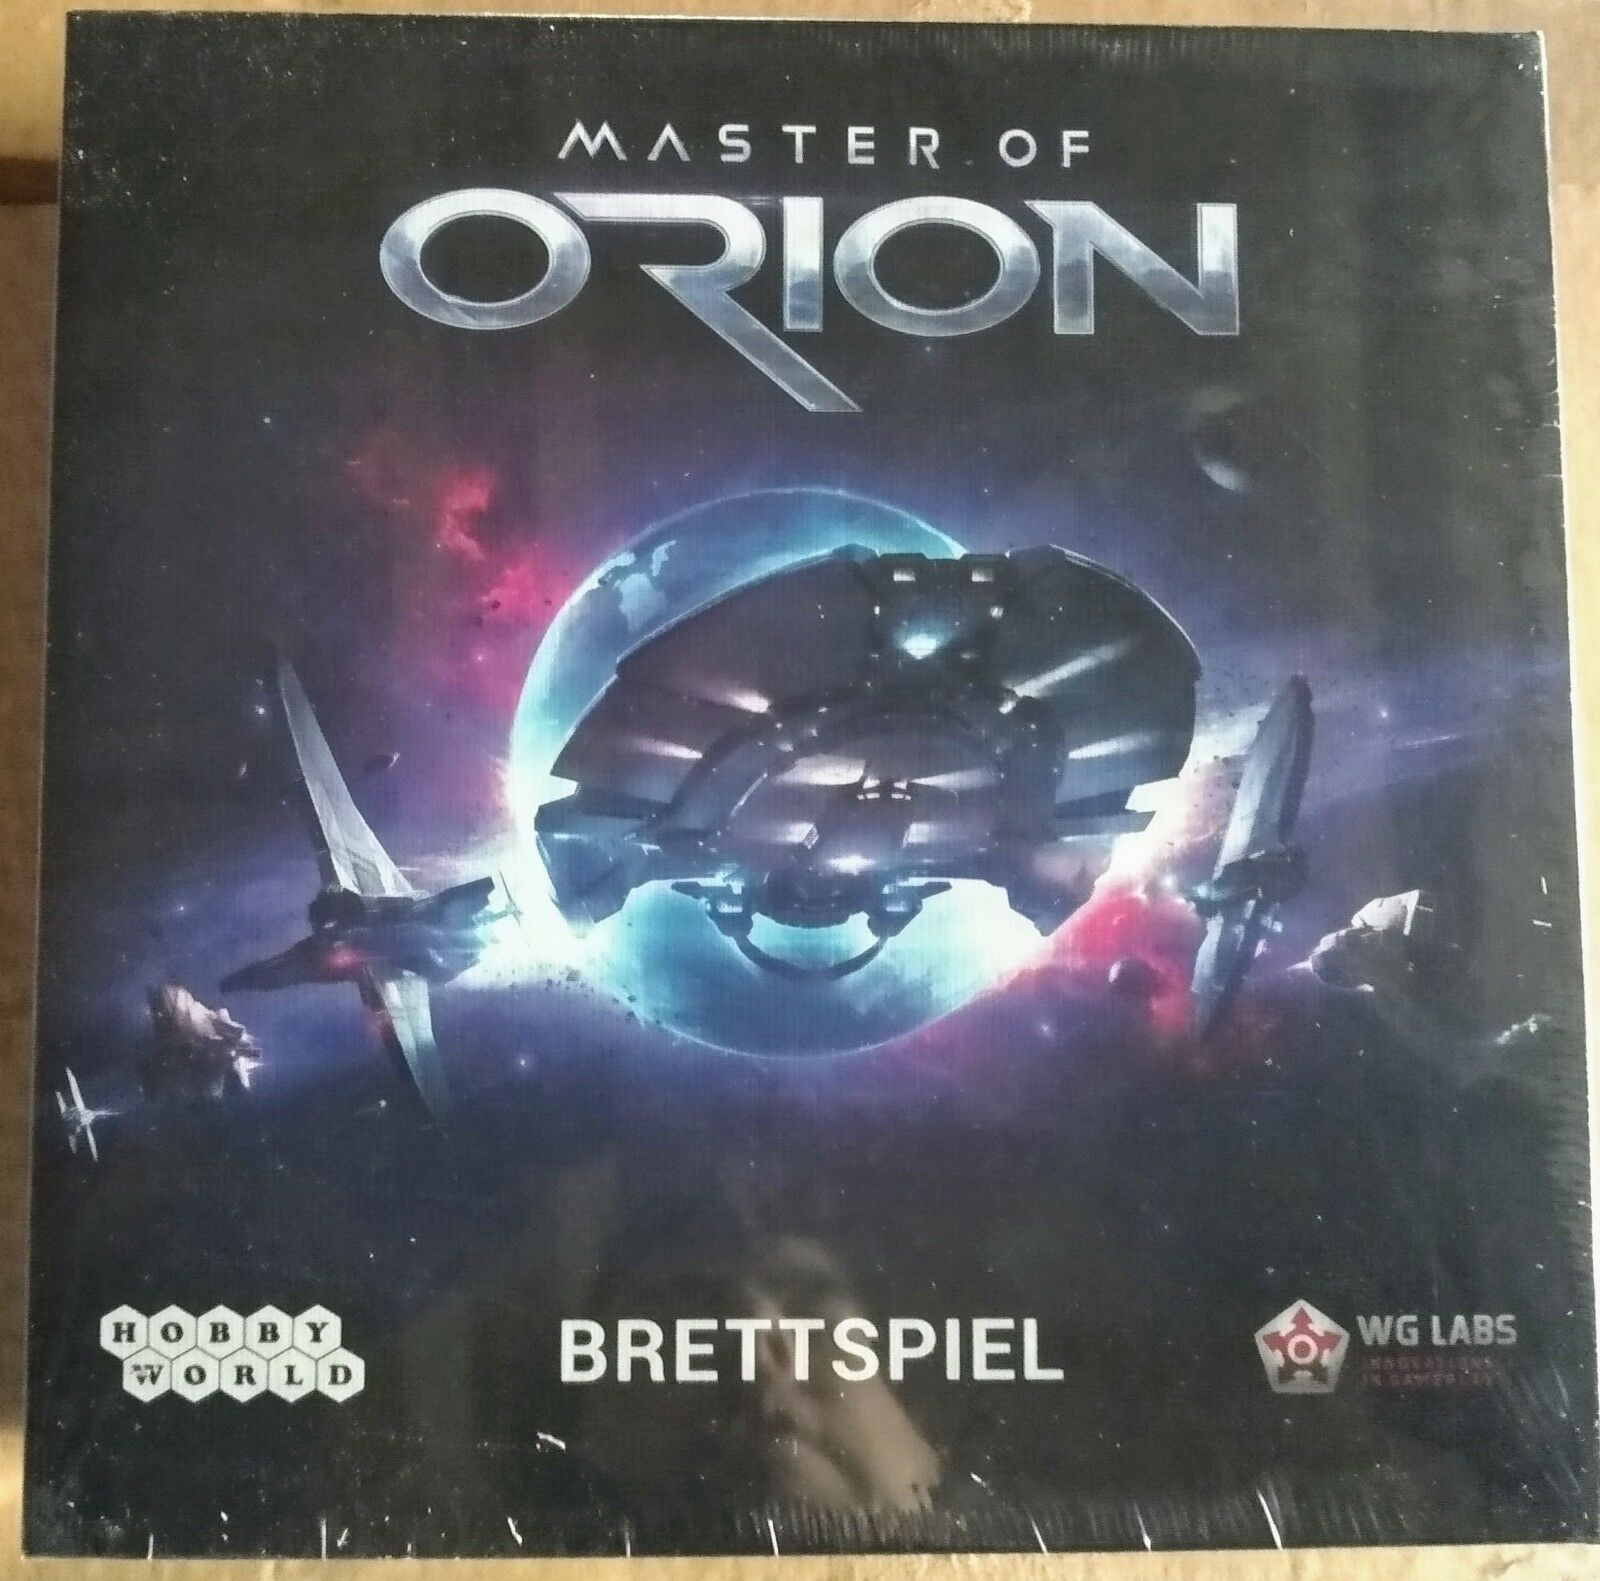 Master of of of Orion - Das Brettspiel ff09f3